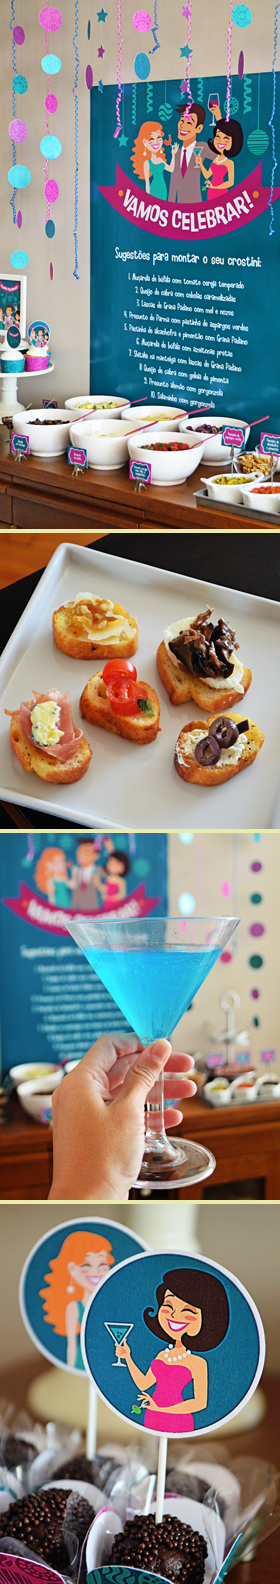 Happy Hour com buffet Self-service de Crostinis